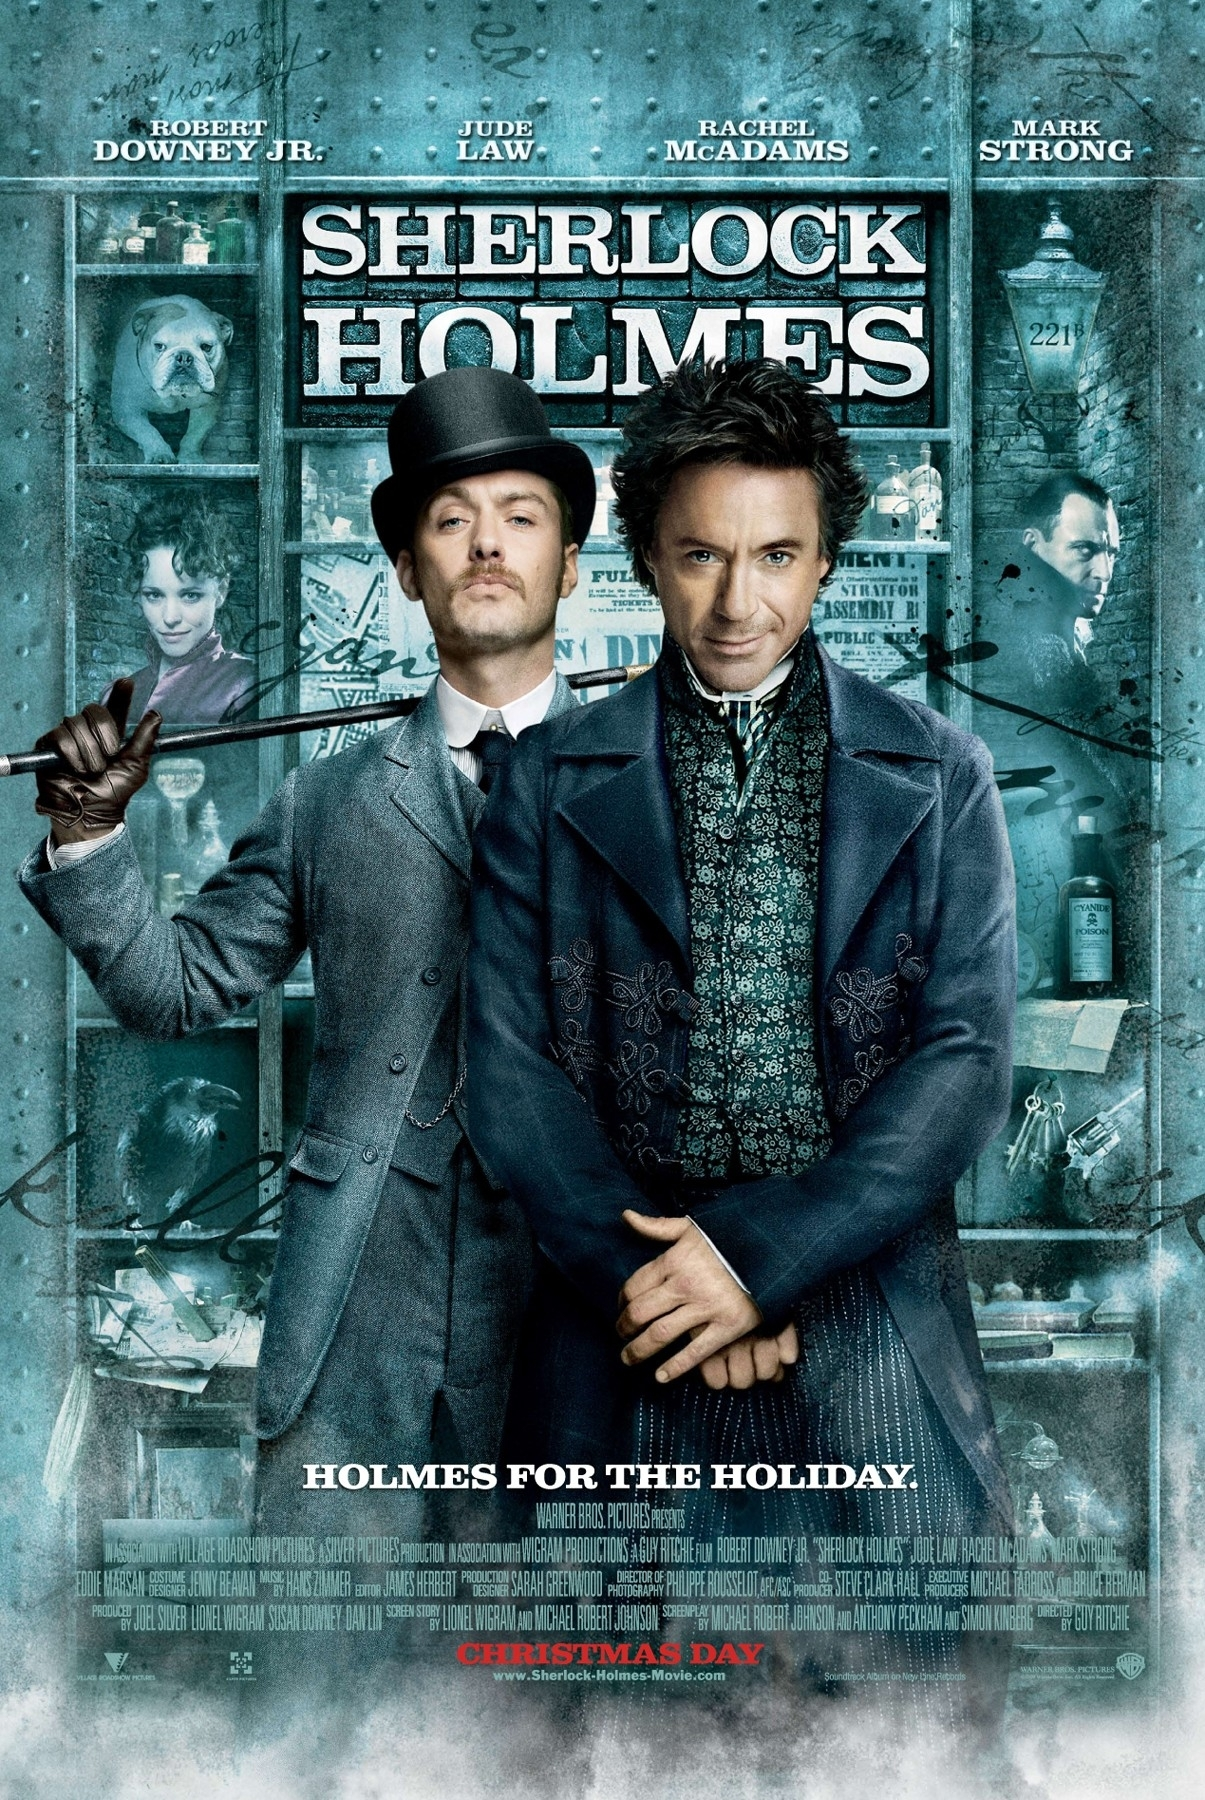 Sherlock Holmes by Guy Ritchie